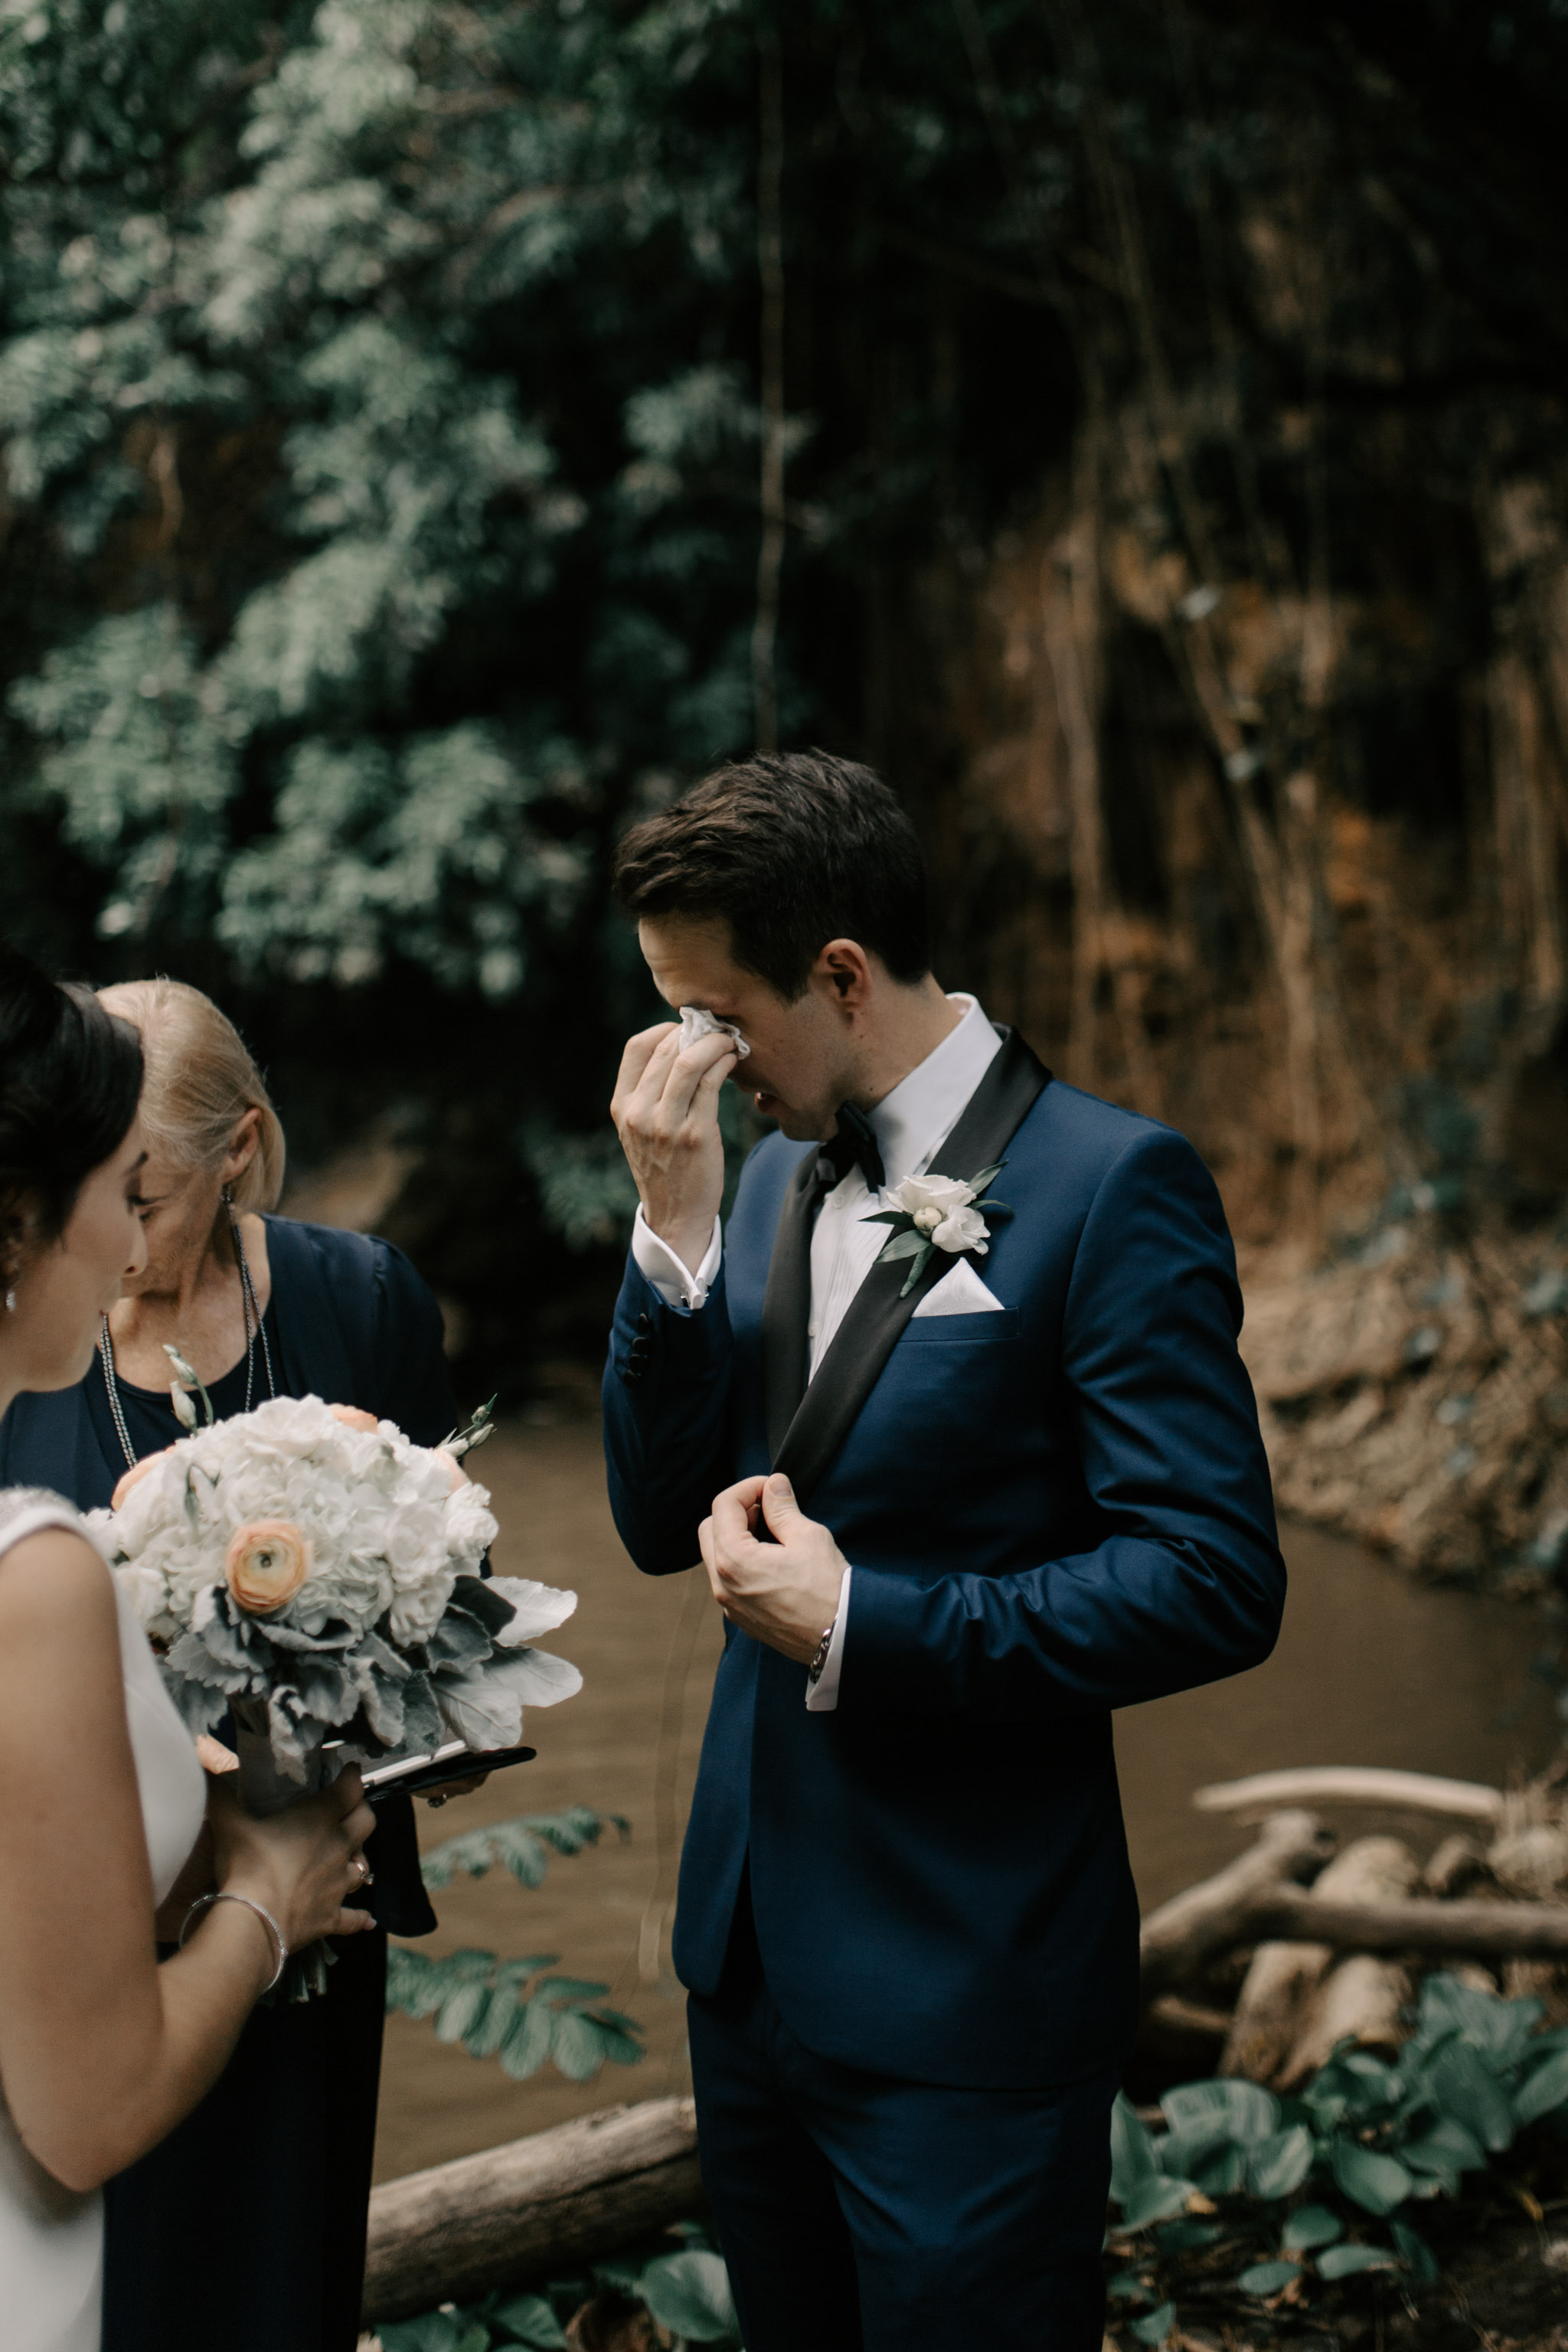 Groom tearing up at ceremony-Waihulili Waterfall Wedding By Kauai Wedding Photographer Desiree Leilani